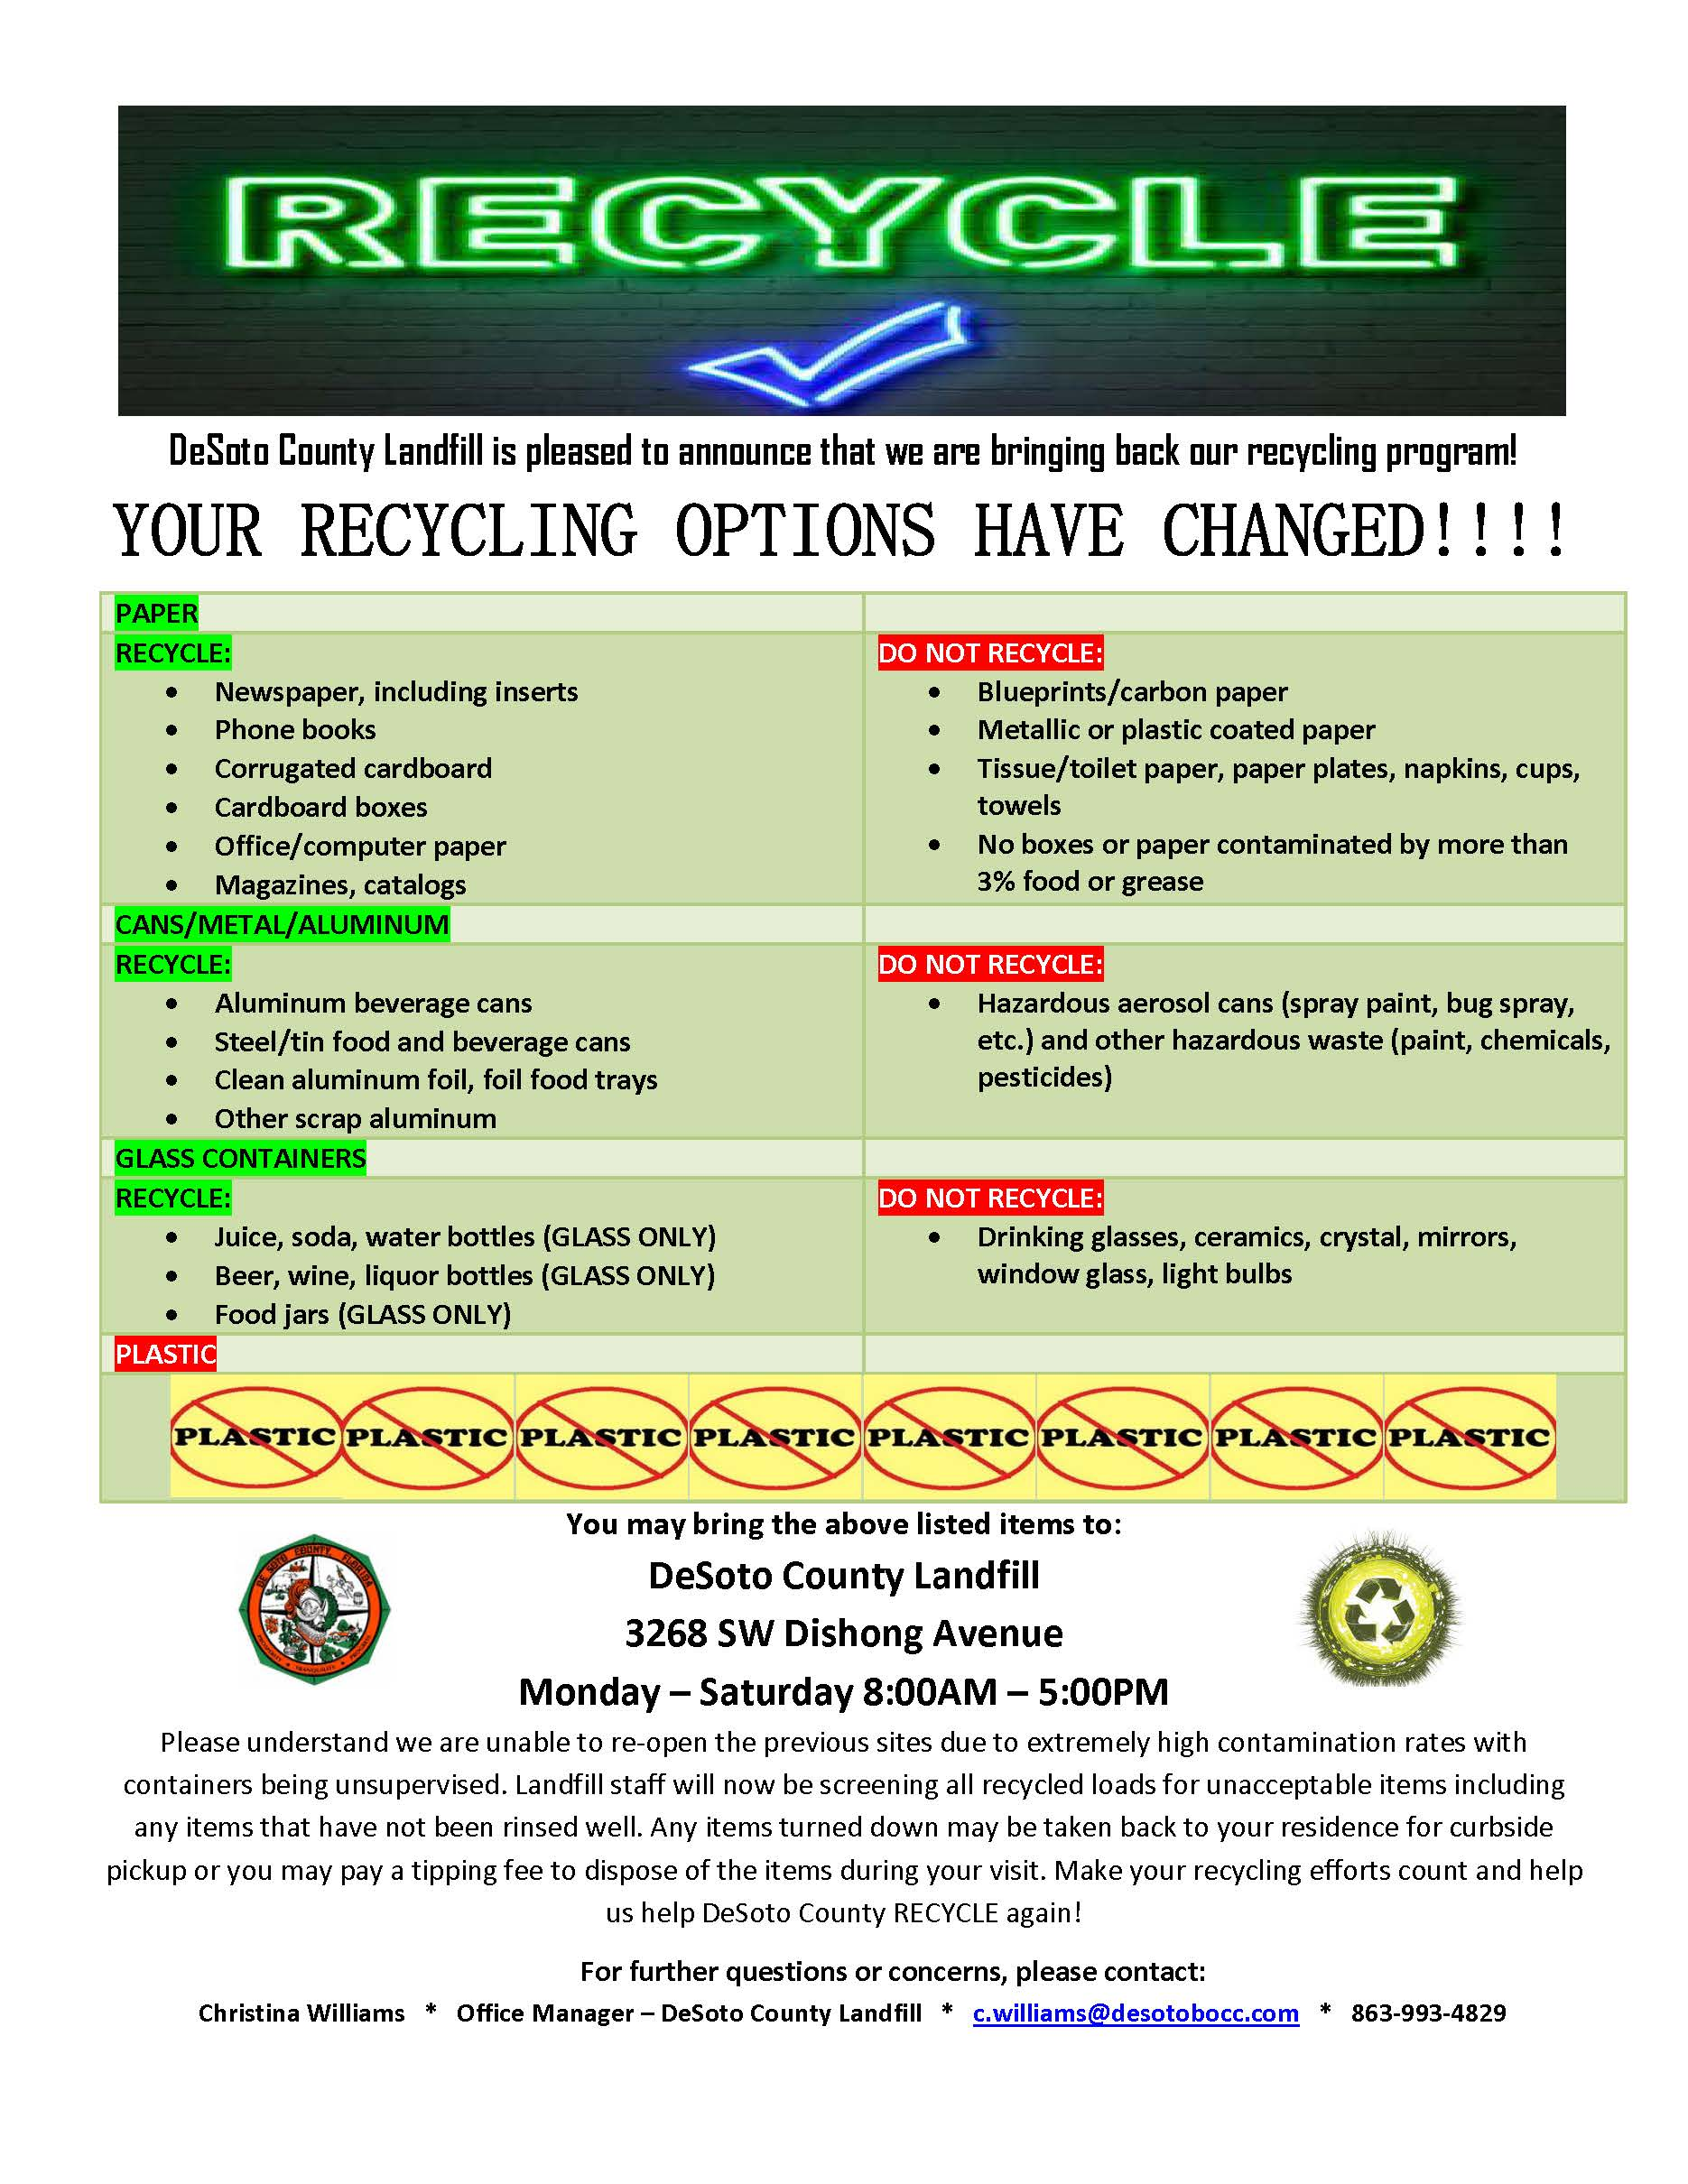 Recycling Program Changes